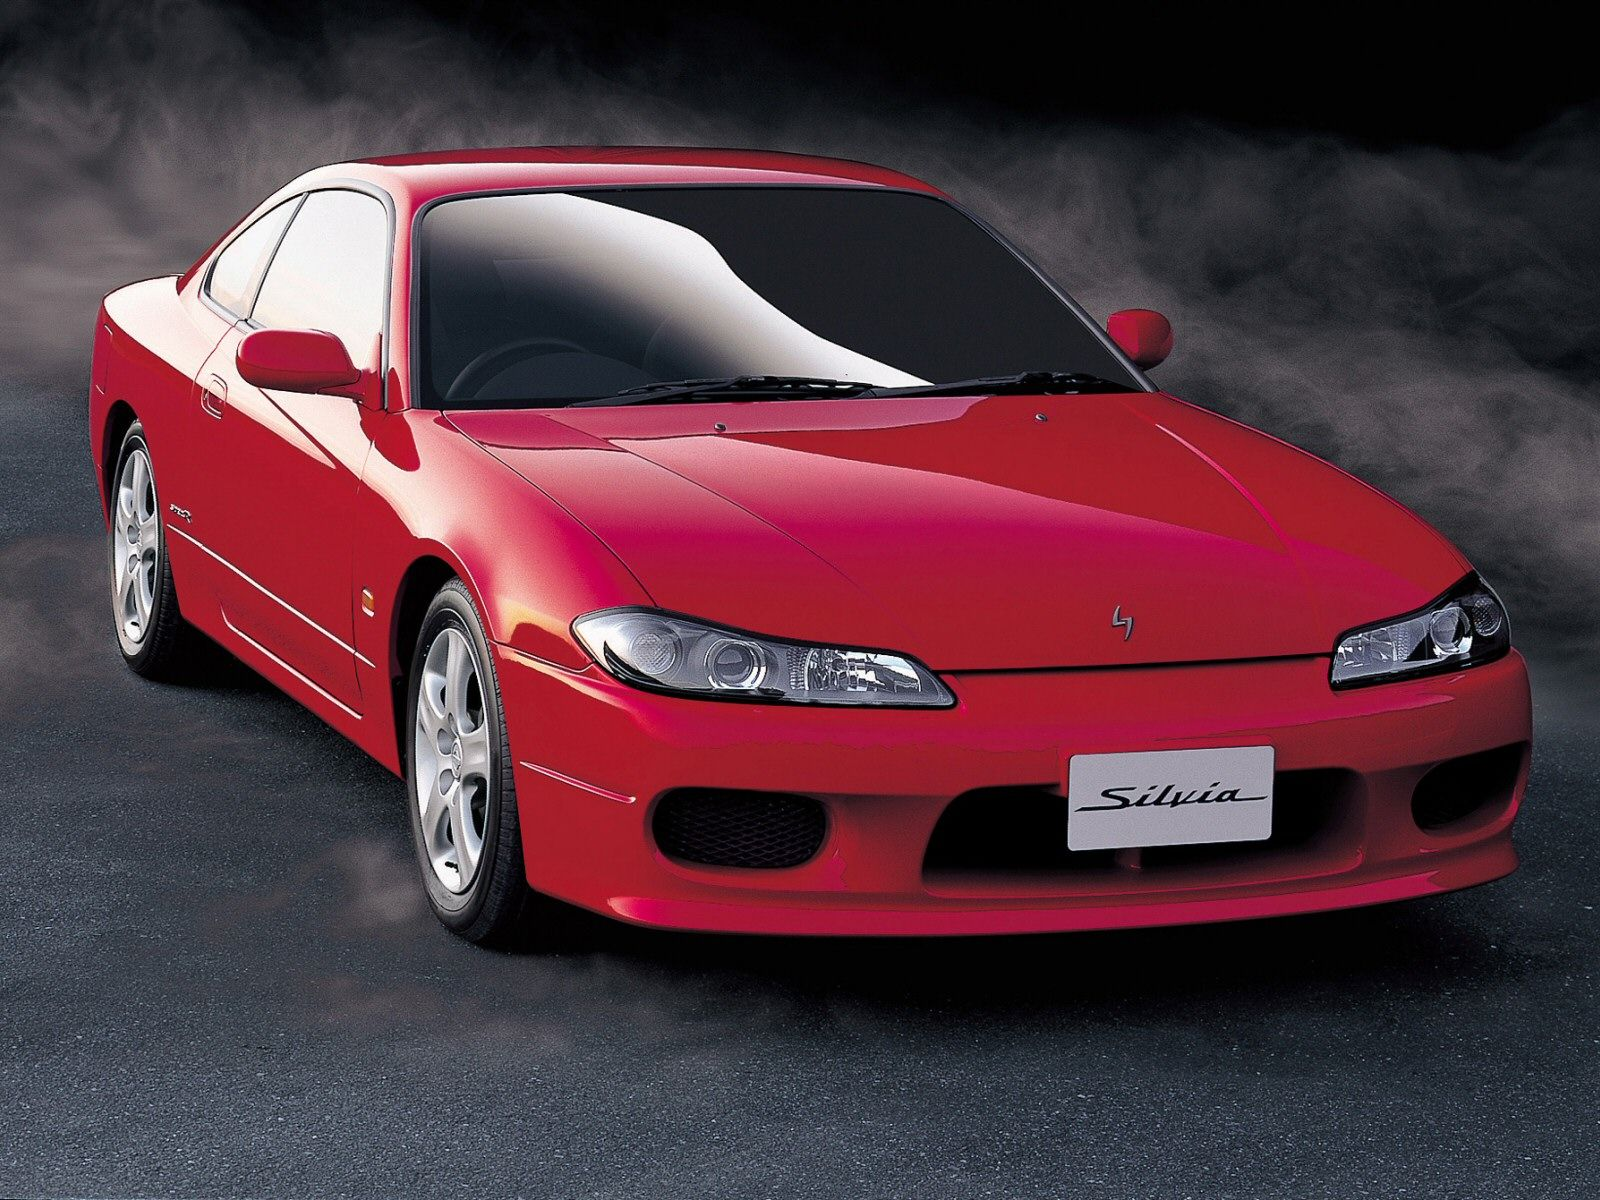 Nissan Silvia S15 Spec-R: My absolute JDM dream car. It never reached  America. The older versions the S13 and S14 were sold here as the 240SX.